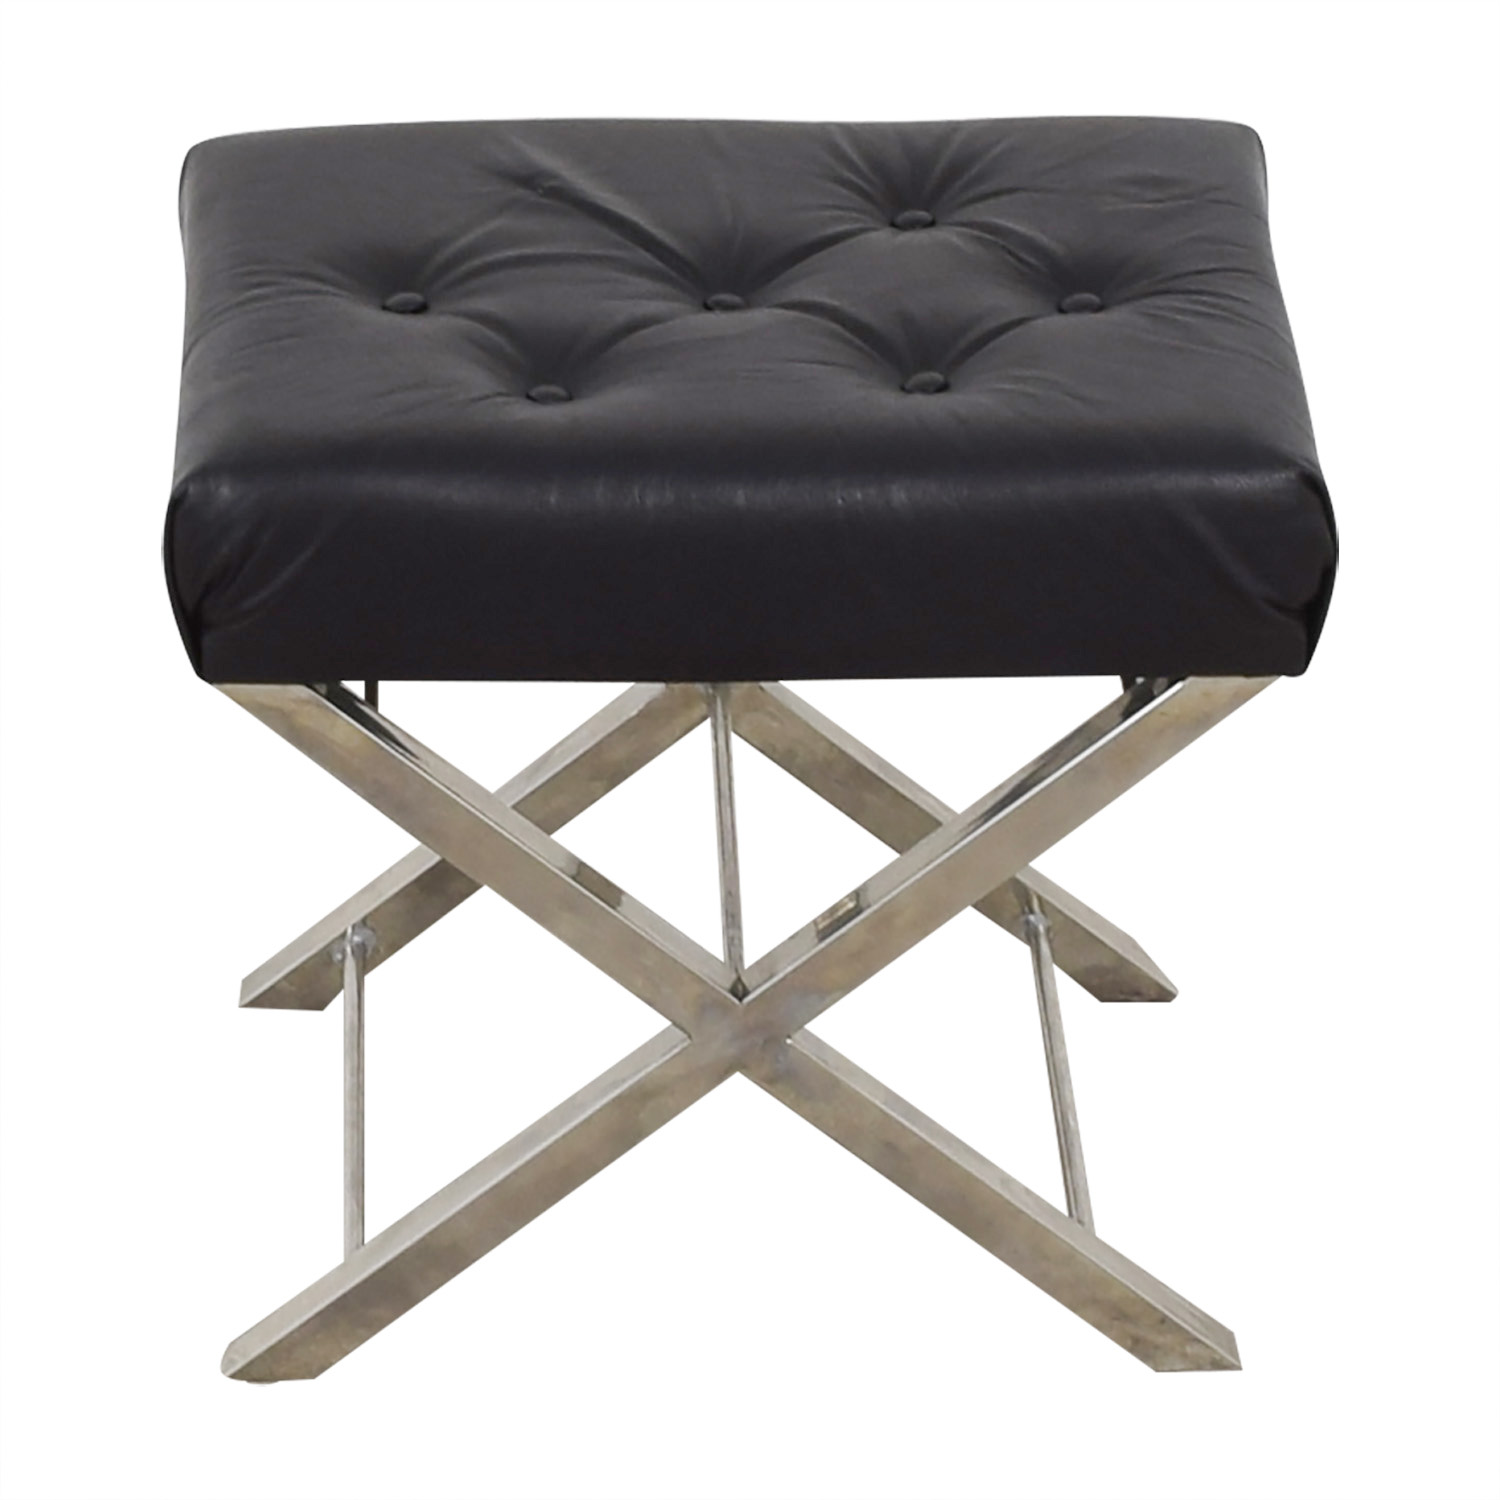 shop Cole & Grey Cole & Grey Black Tufted Leather Stool online